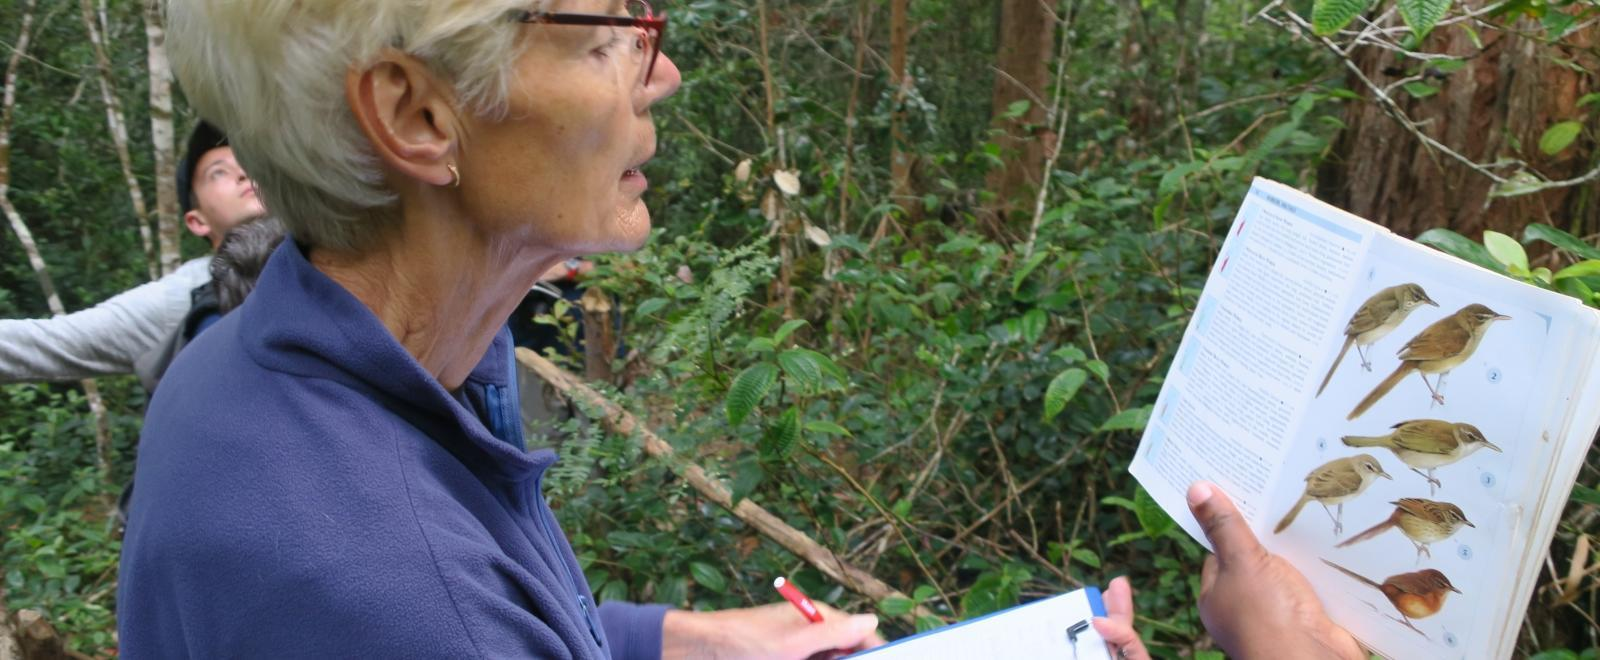 A senior volunteering abroad helps to count bird species during a census at our Conservation Project in Madagascar, Africa.